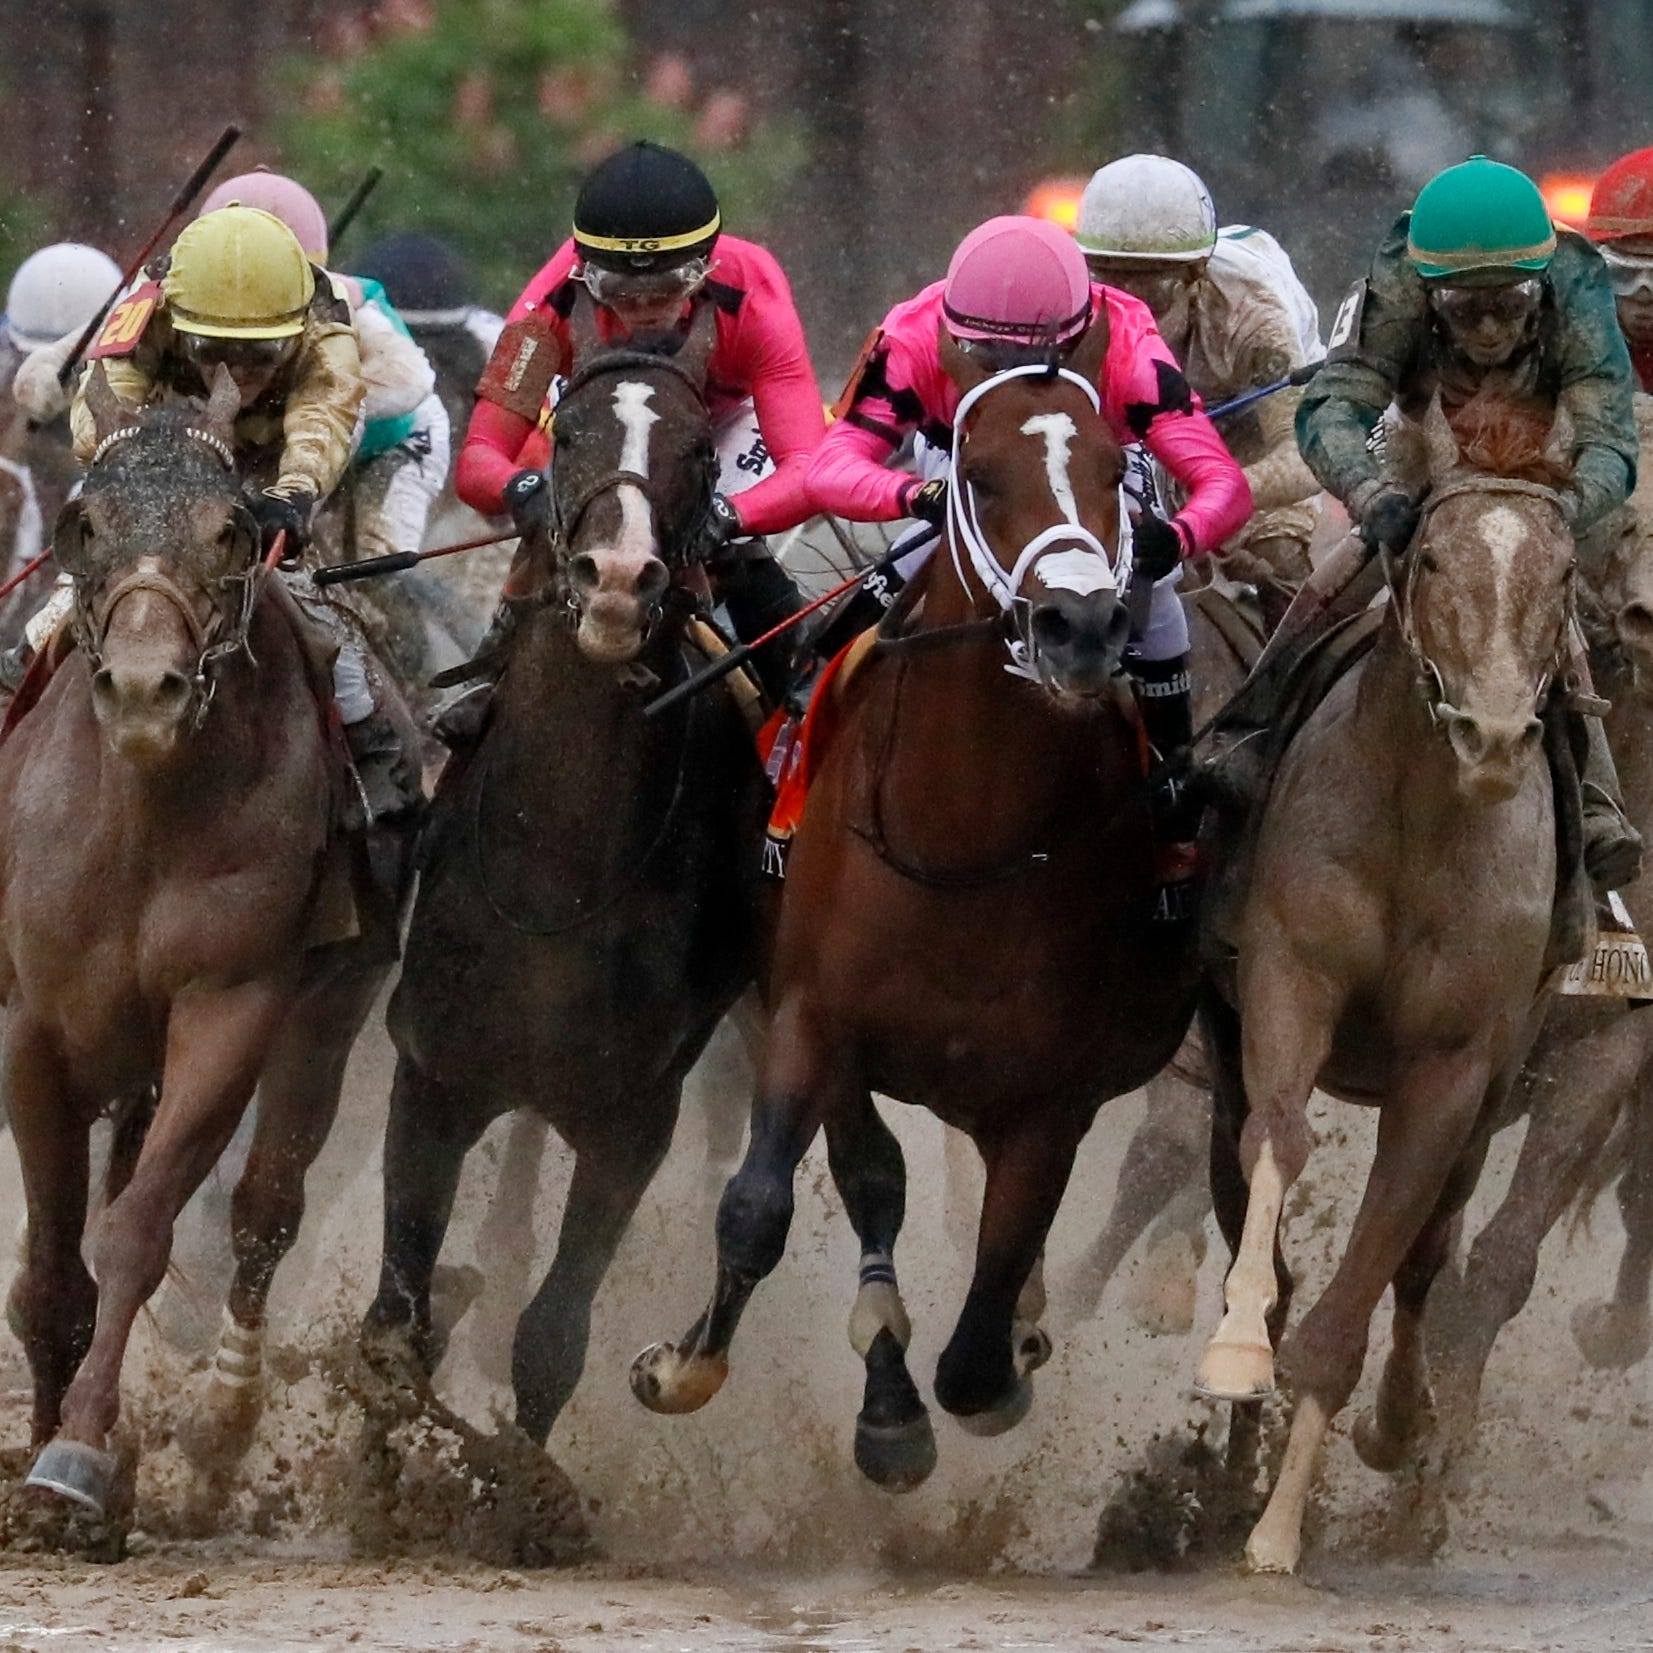 Maximum Security owner offers $20 million challenge for Kentucky Derby rematch